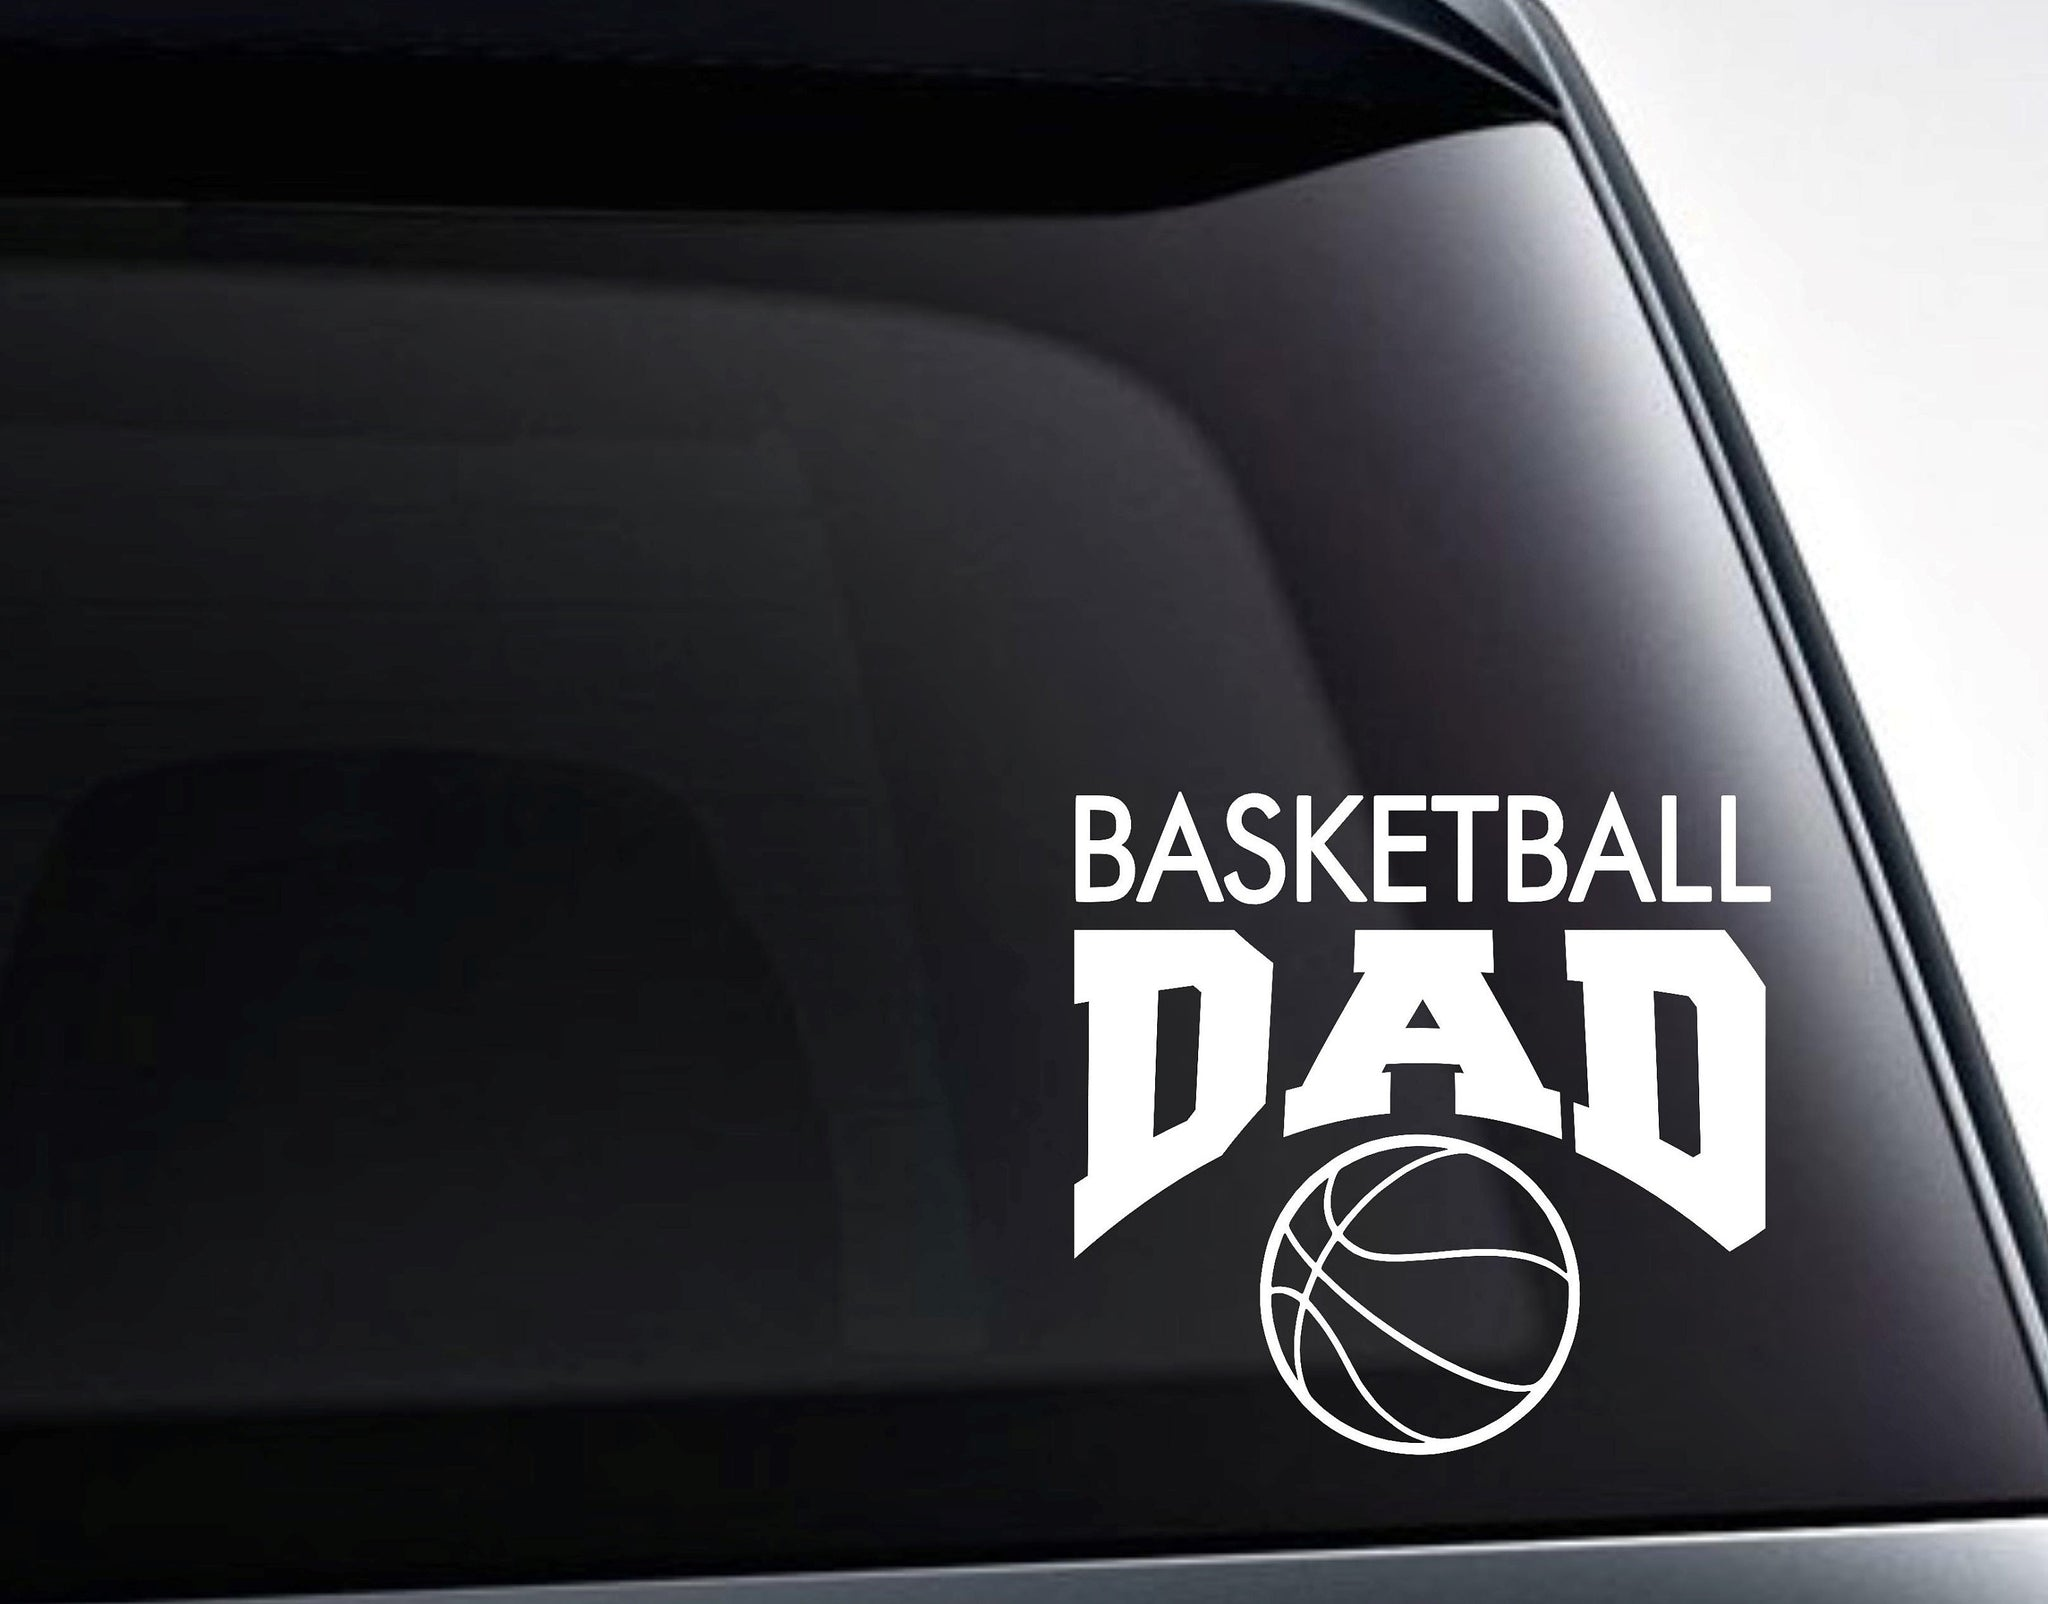 Basketball Dad Decal, Basketball Dad Sticker